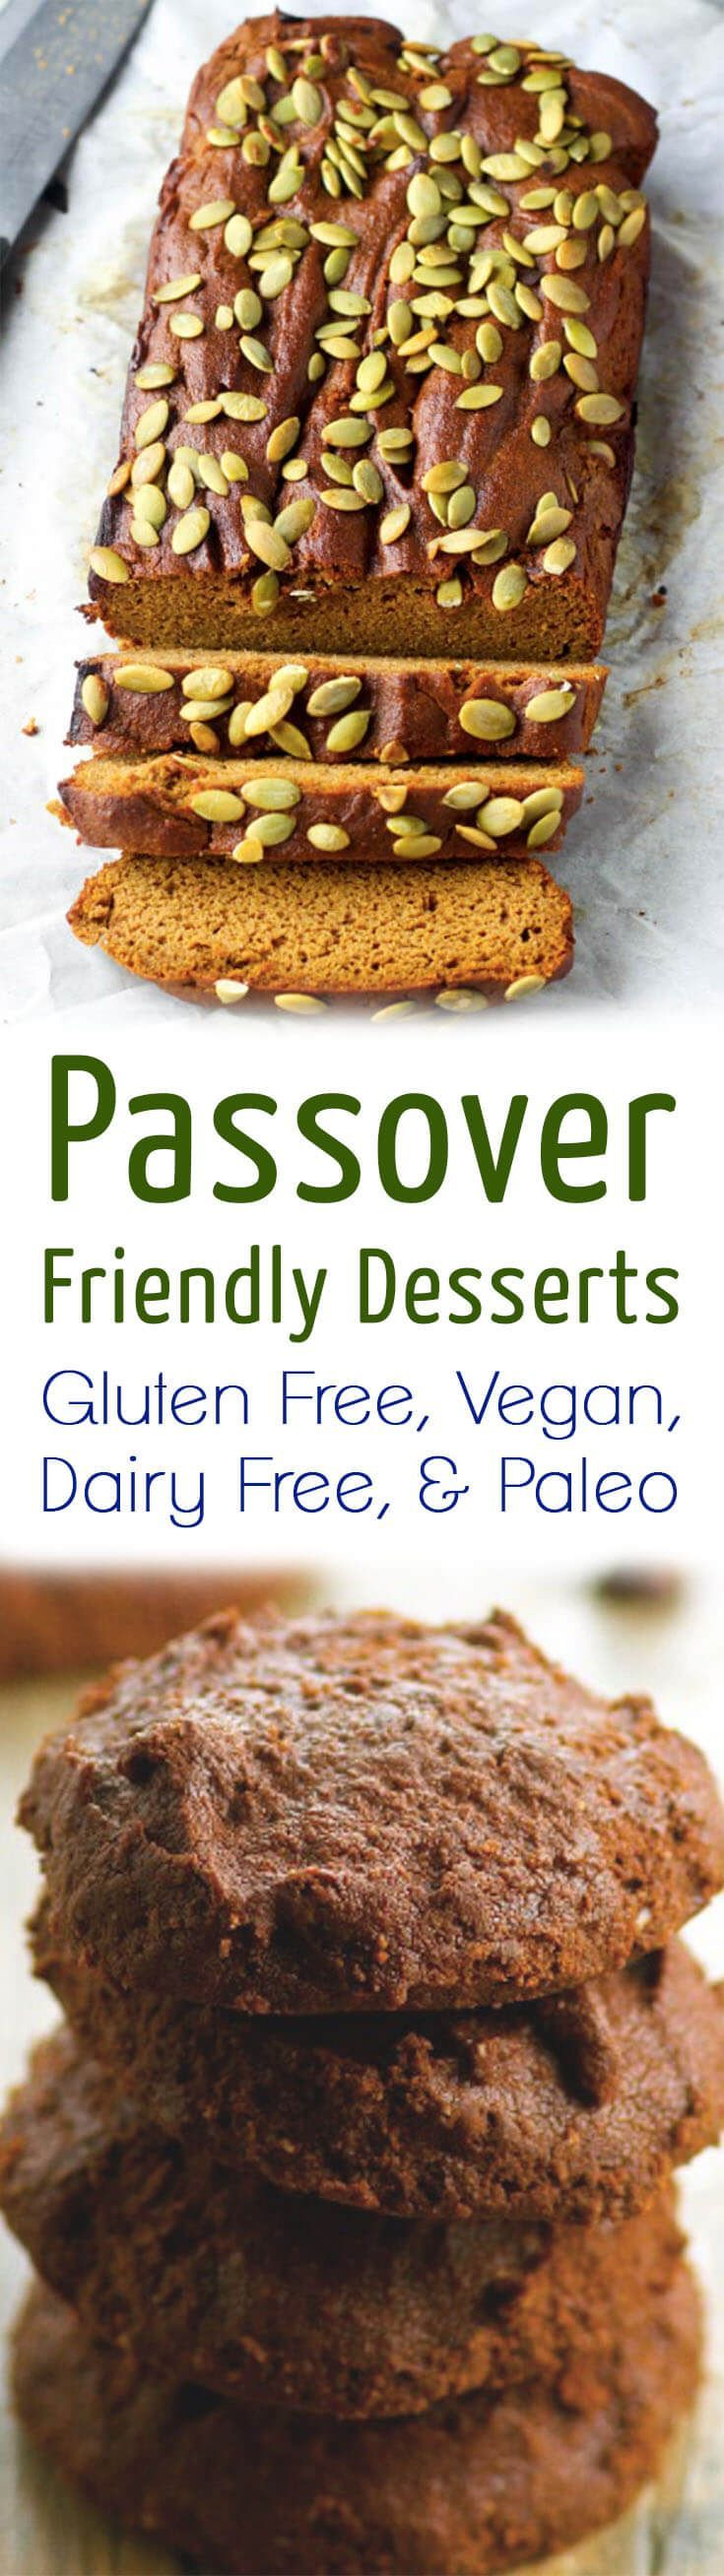 23 Best Passover Recipes Images On Pinterest Passover Recipes